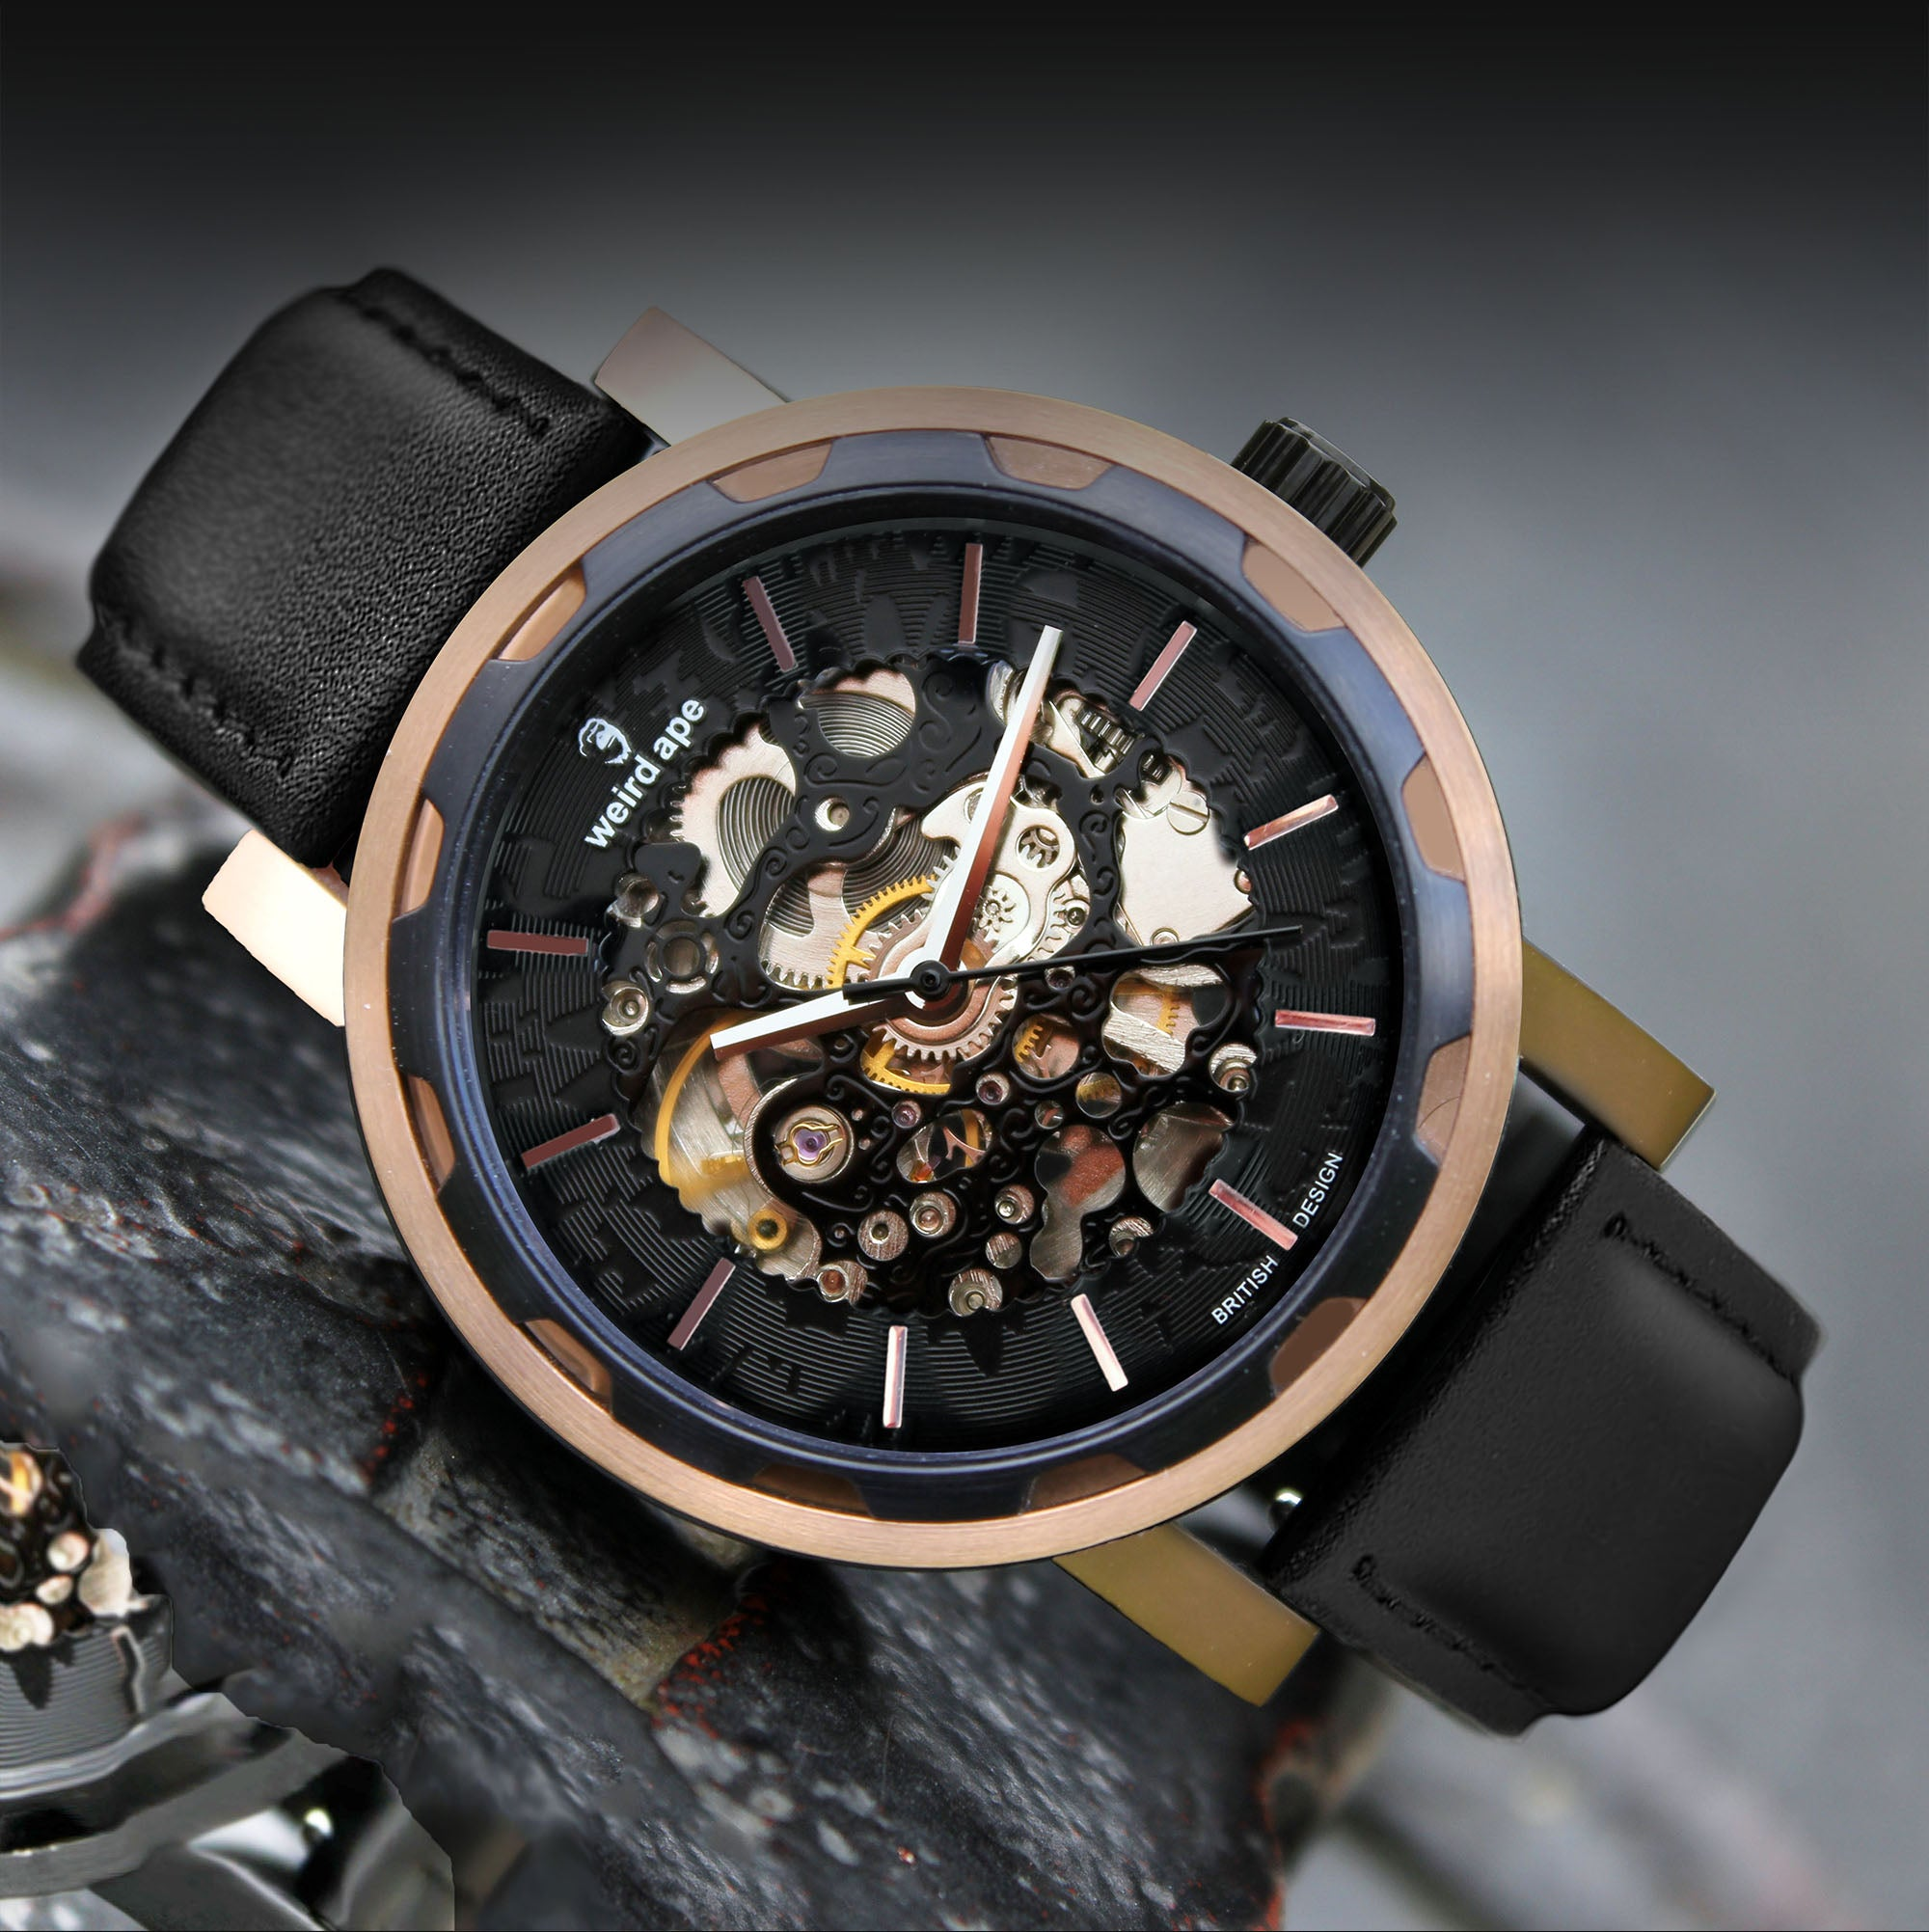 A picture of a rose gold mechanical watch with a black leather strap.